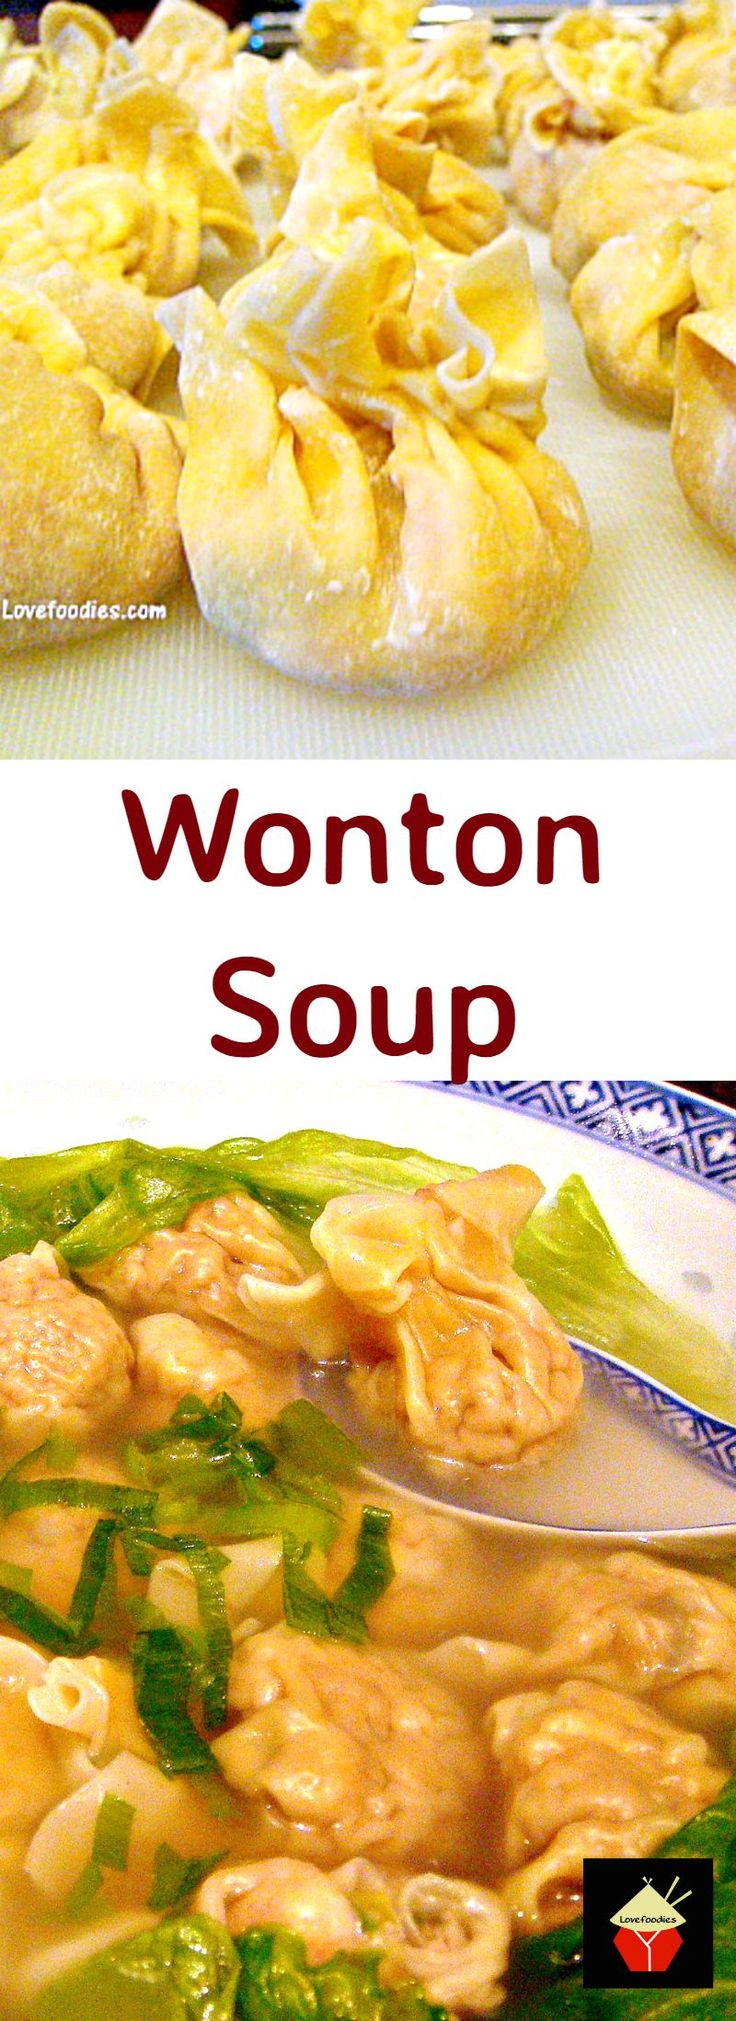 5254 best authentic asian recipes images on pinterest asian make your very own chinese wonton soup better than the restaurants for sure easy step by step instructions and great recipe for the filling and delicious forumfinder Image collections